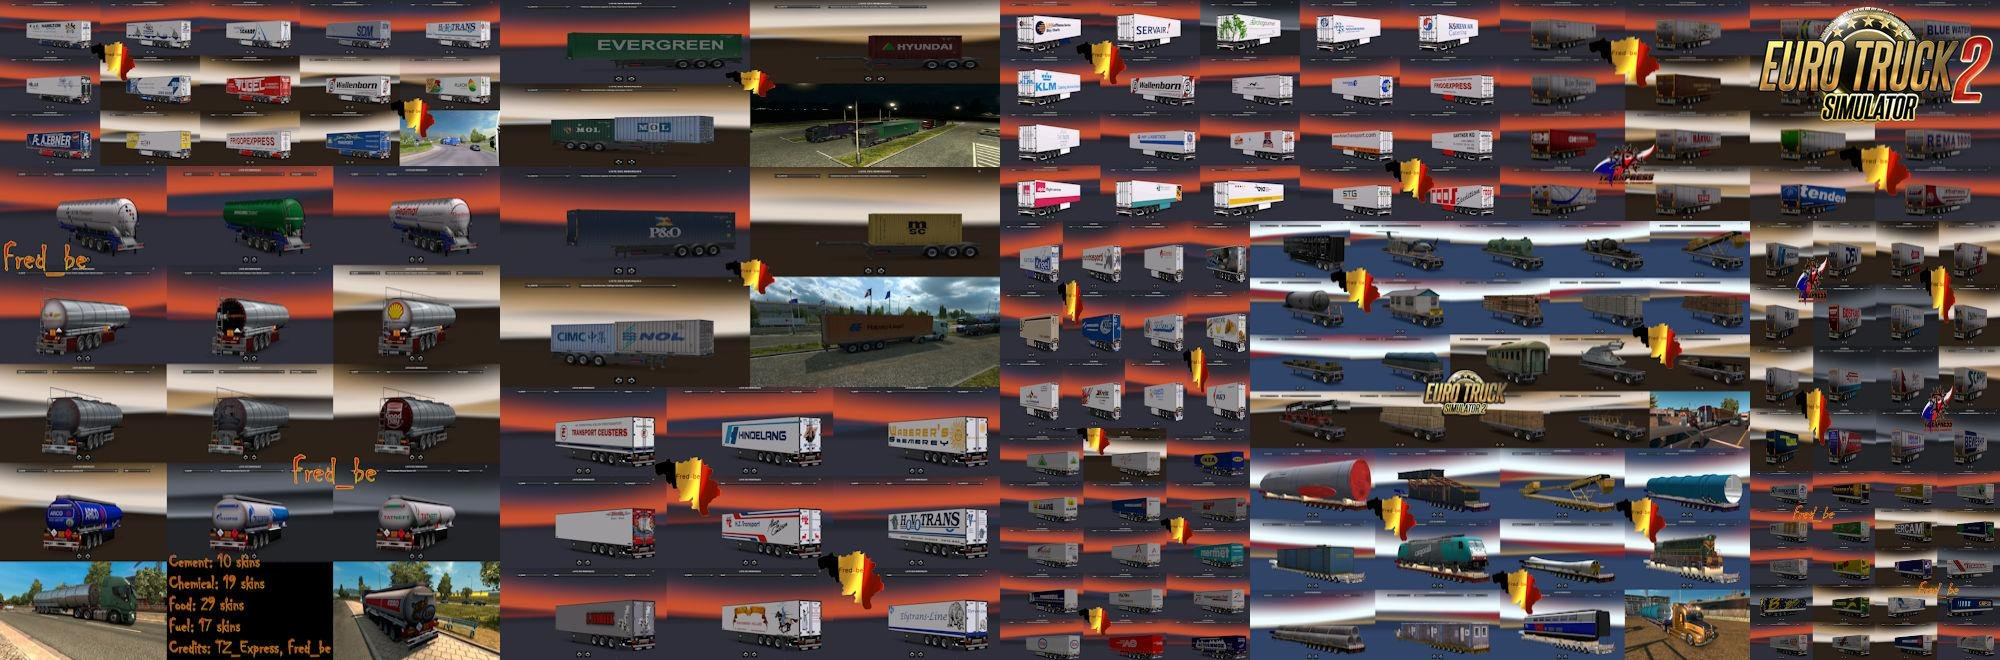 Trailer Pack v10 by Fred_be [1.26.x]